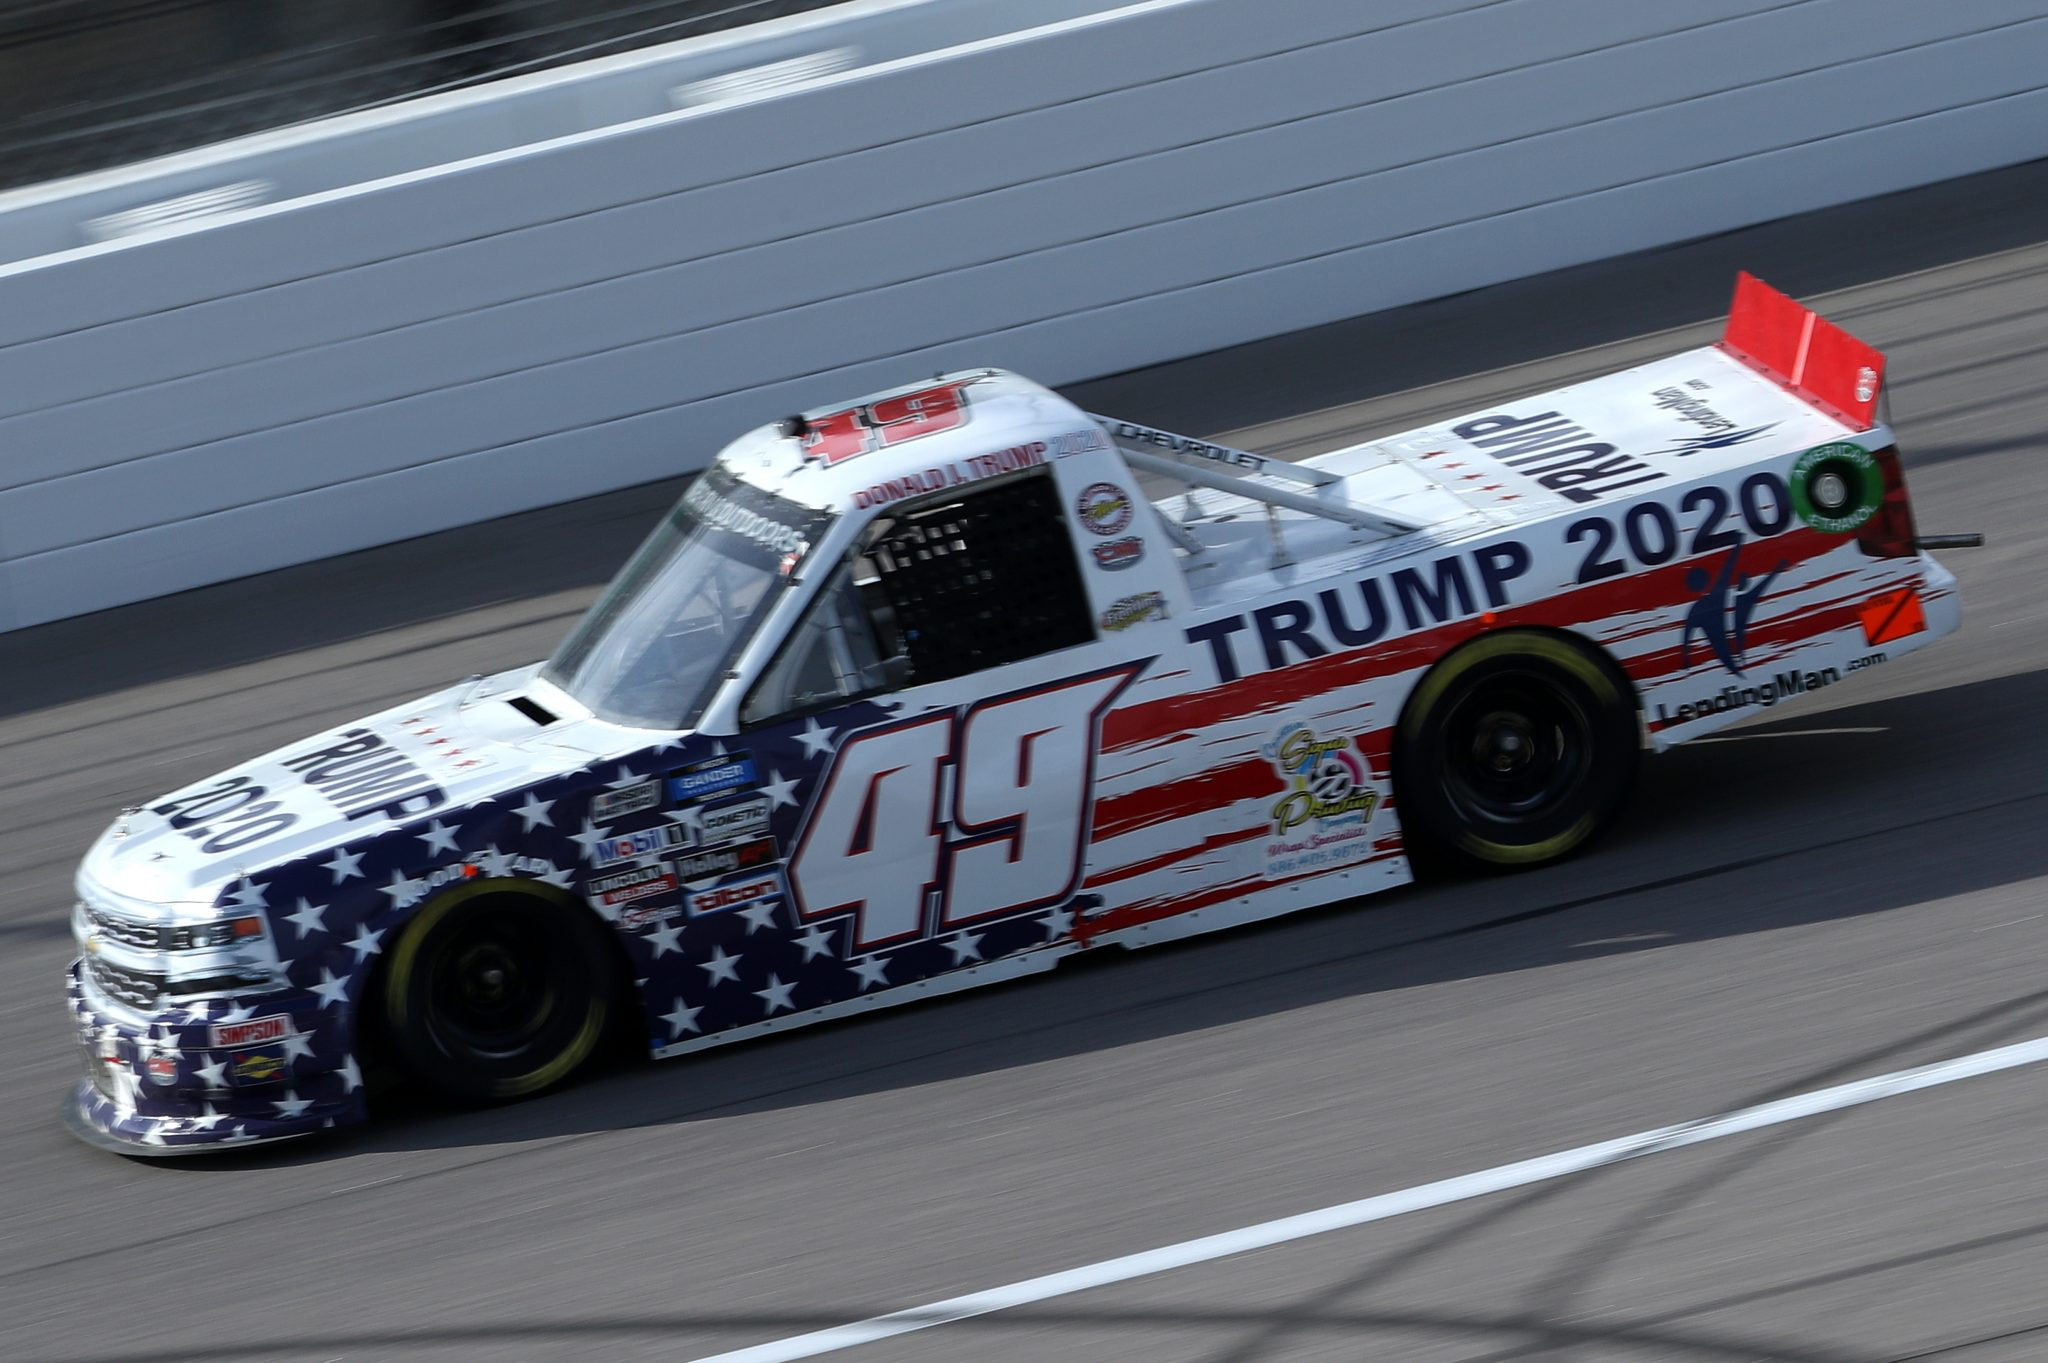 KANSAS CITY, KANSAS - OCTOBER 17: Tim Viens, driver of the #49 CMI Motorsports Chevrolet, drives during the NASCAR Gander RV & Outdoors Truck Series Clean Harbors 200at Kansas Speedway on October 17, 2020 in Kansas City, Kansas. (Photo by Chris Graythen/Getty Images) | Getty Images